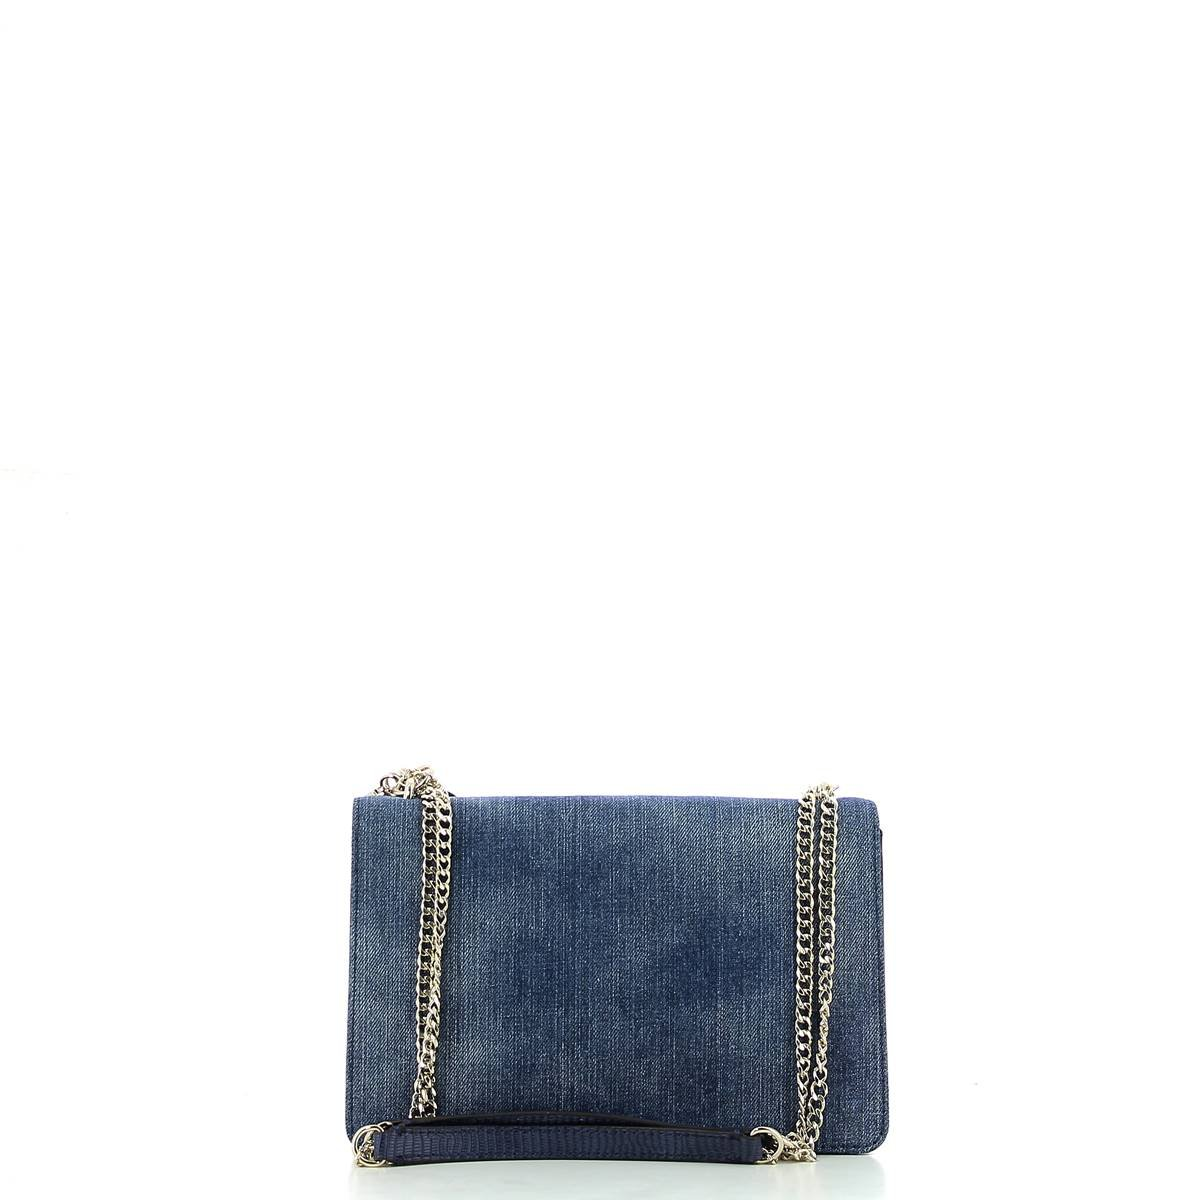 Tracollina Guess in denim Arianna